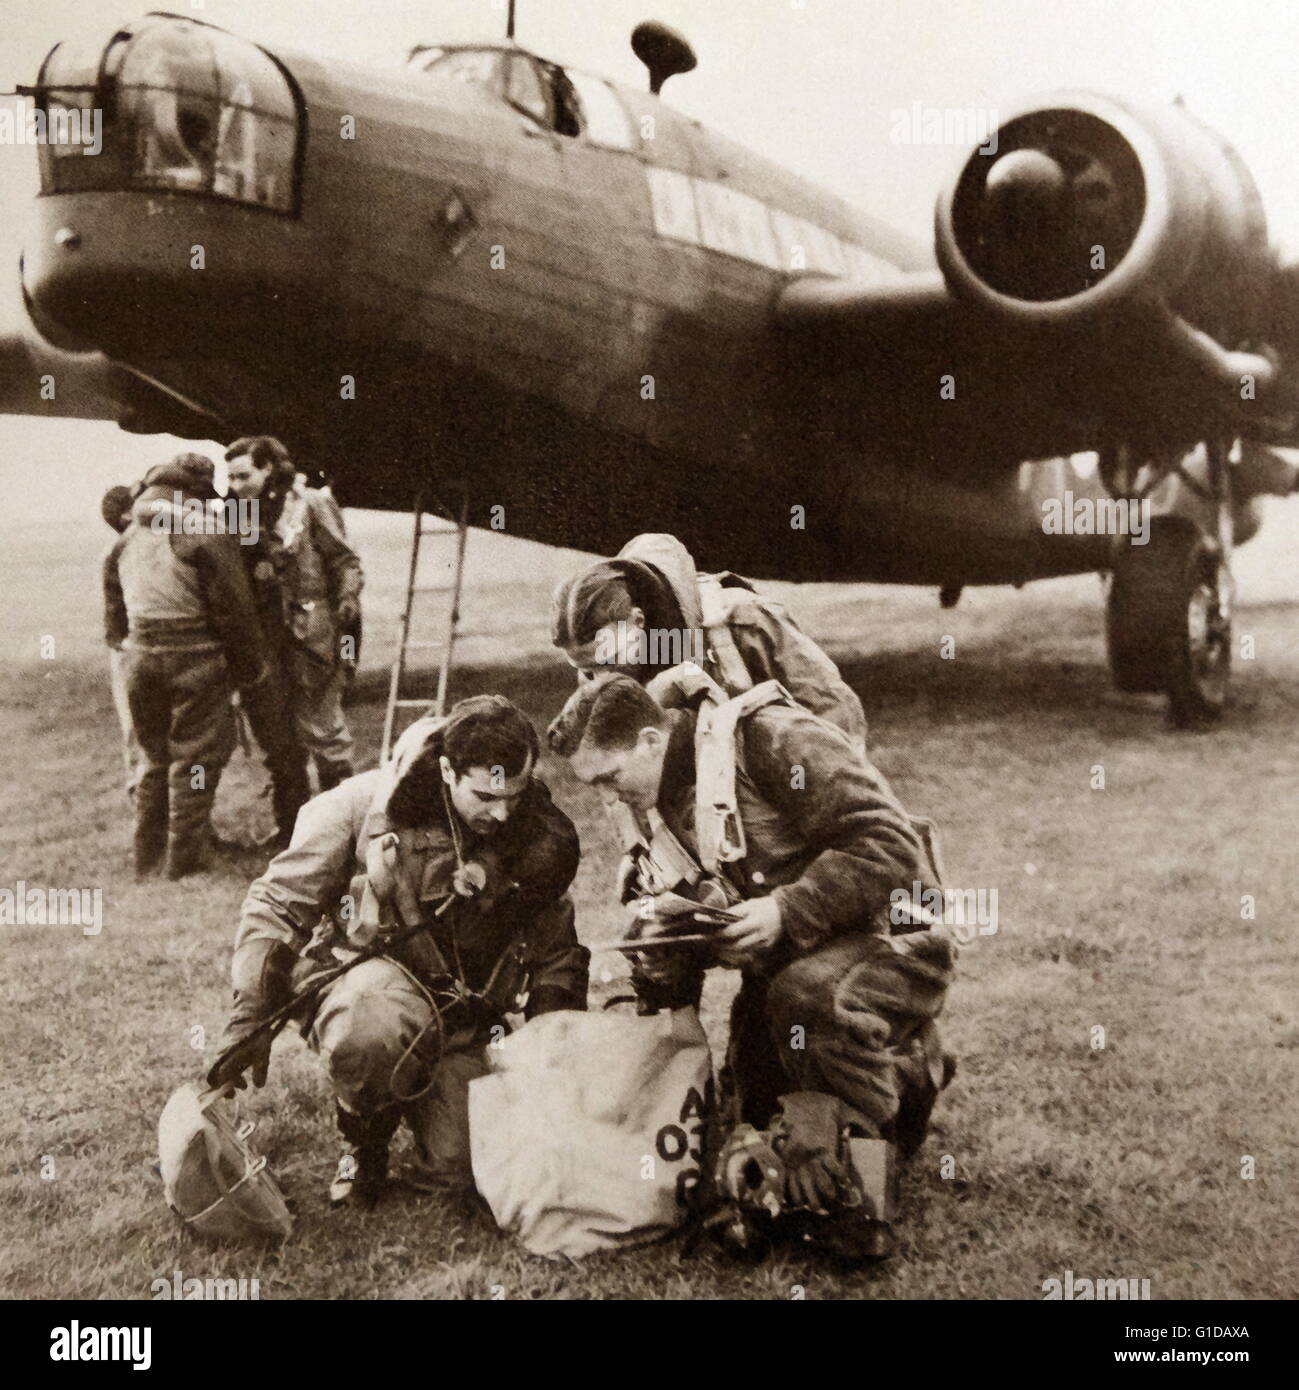 B-17 bombers returned from a mission over Germany. - Stock Image